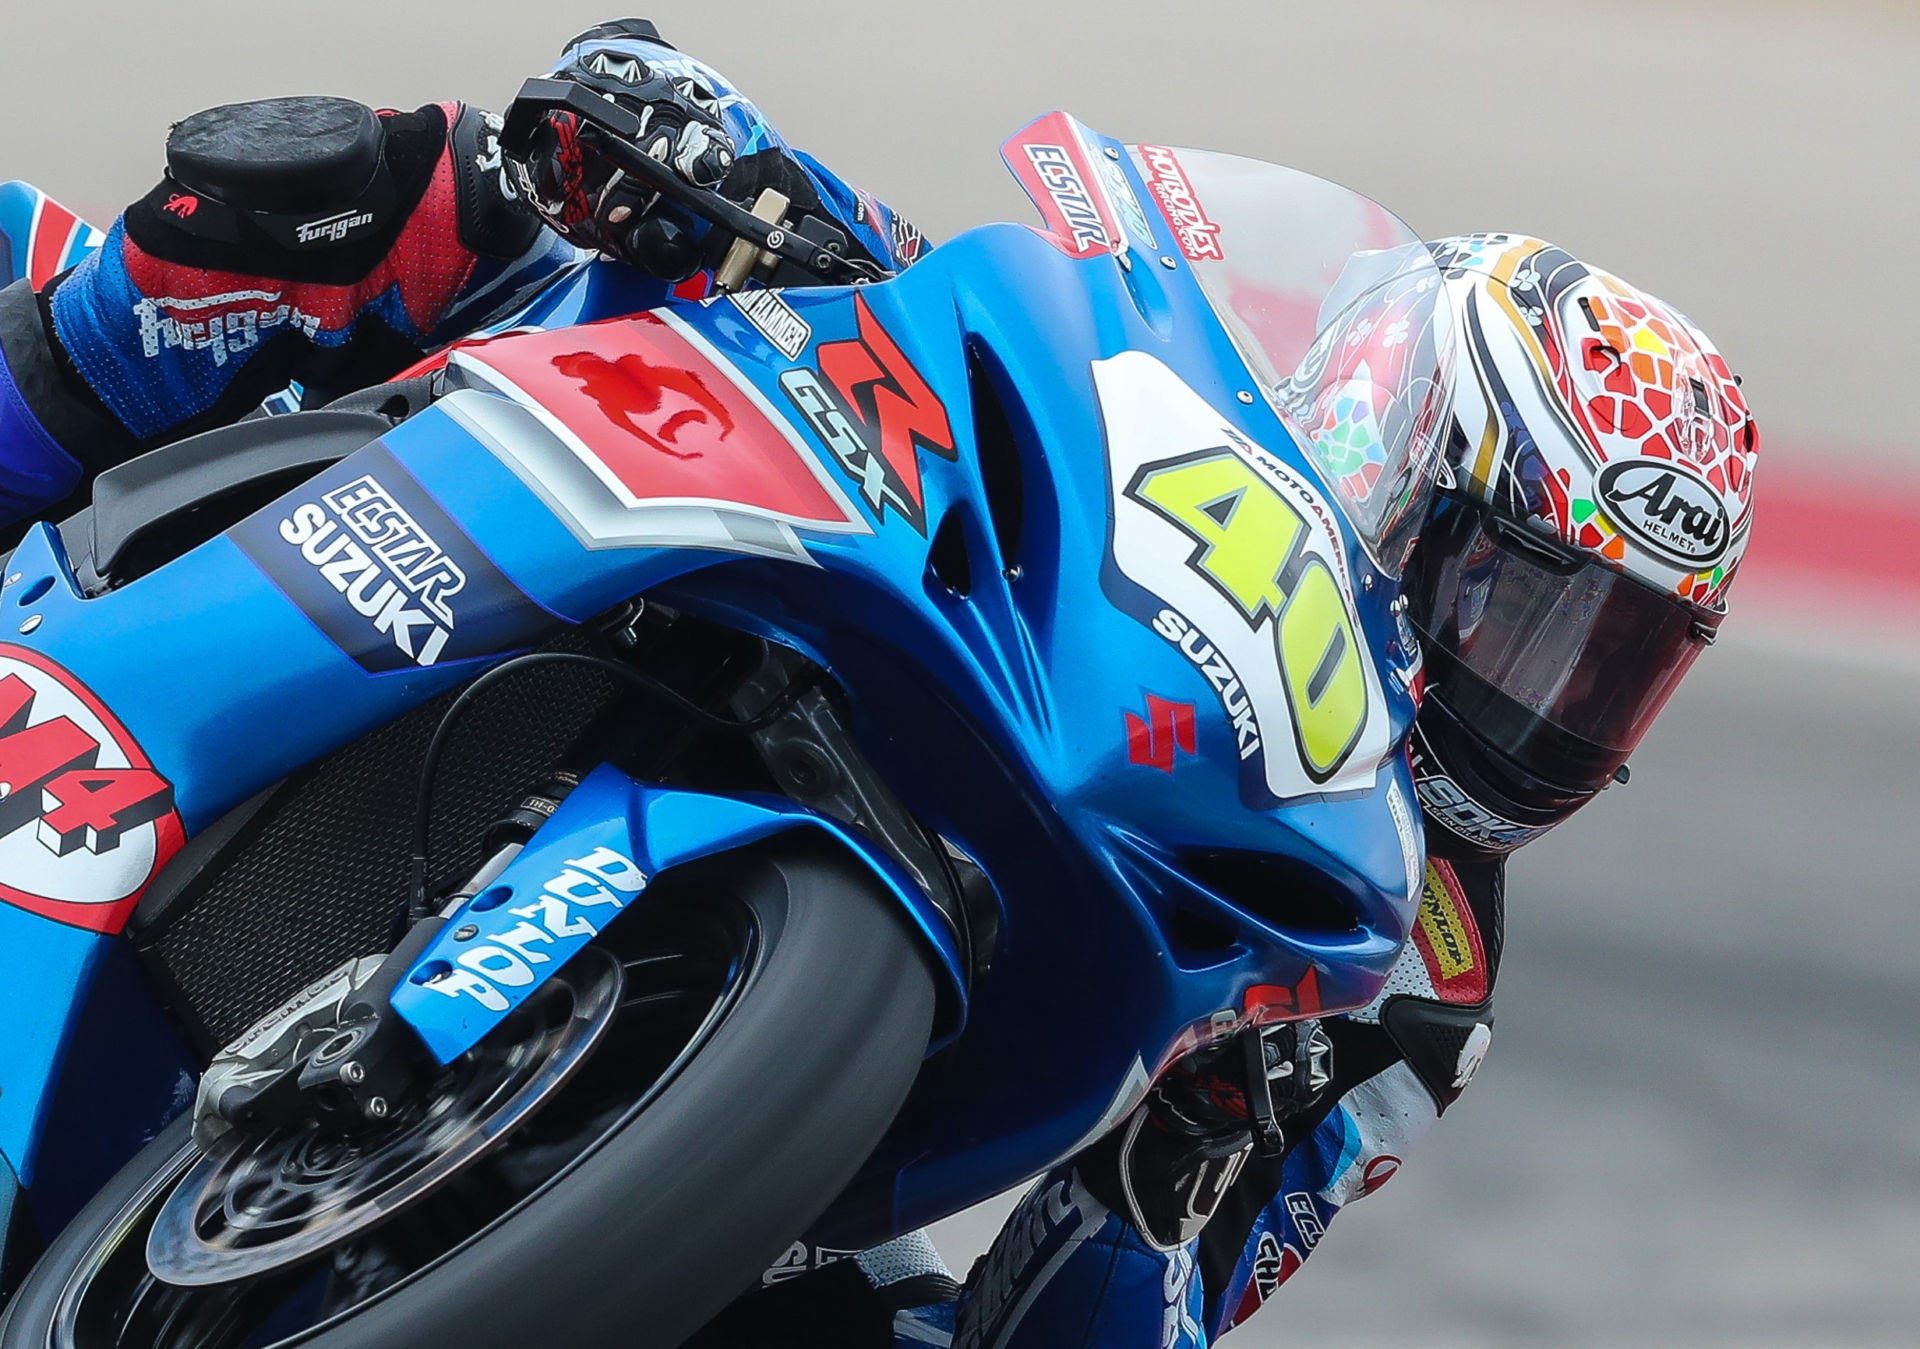 Arai Helmets will be an official partner of the 2021 MotoAmerica Series. Photo by Brian J. Nelson